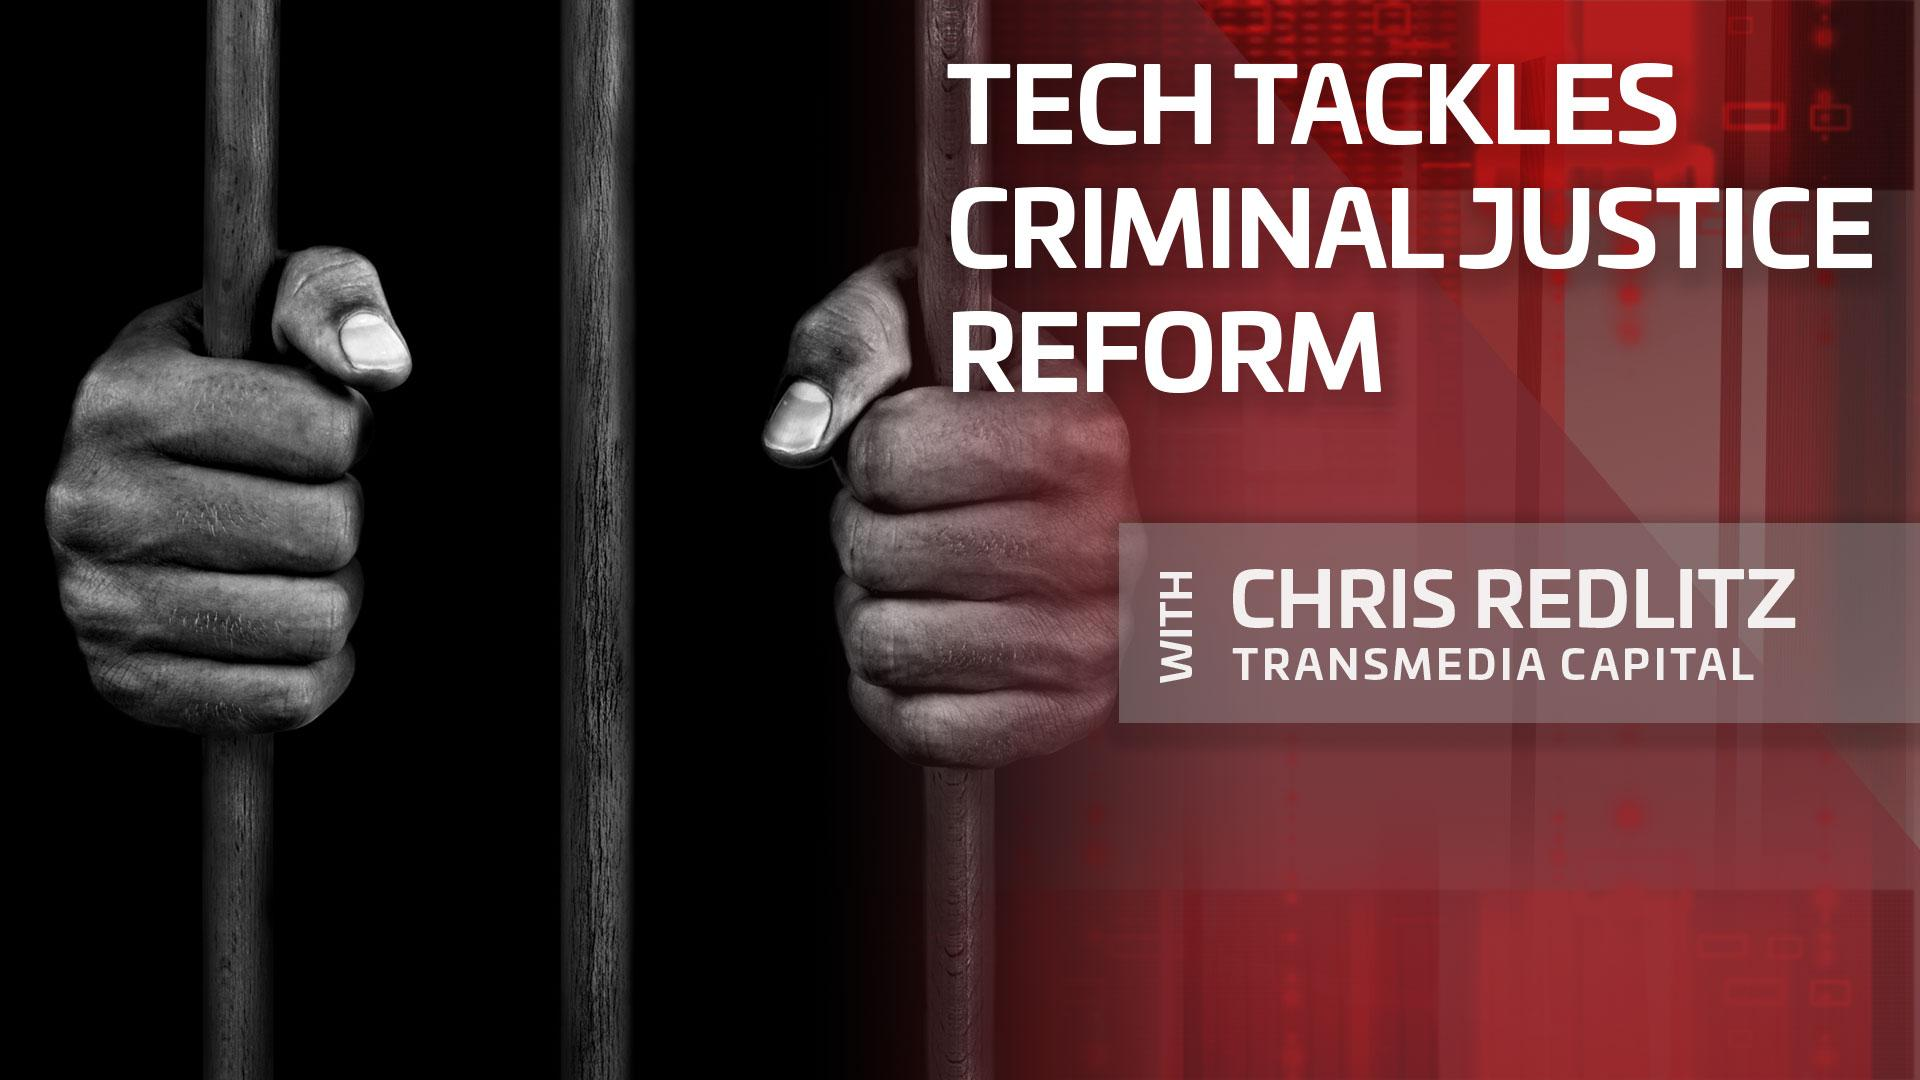 Tech tackles criminal justice reform | Bullish